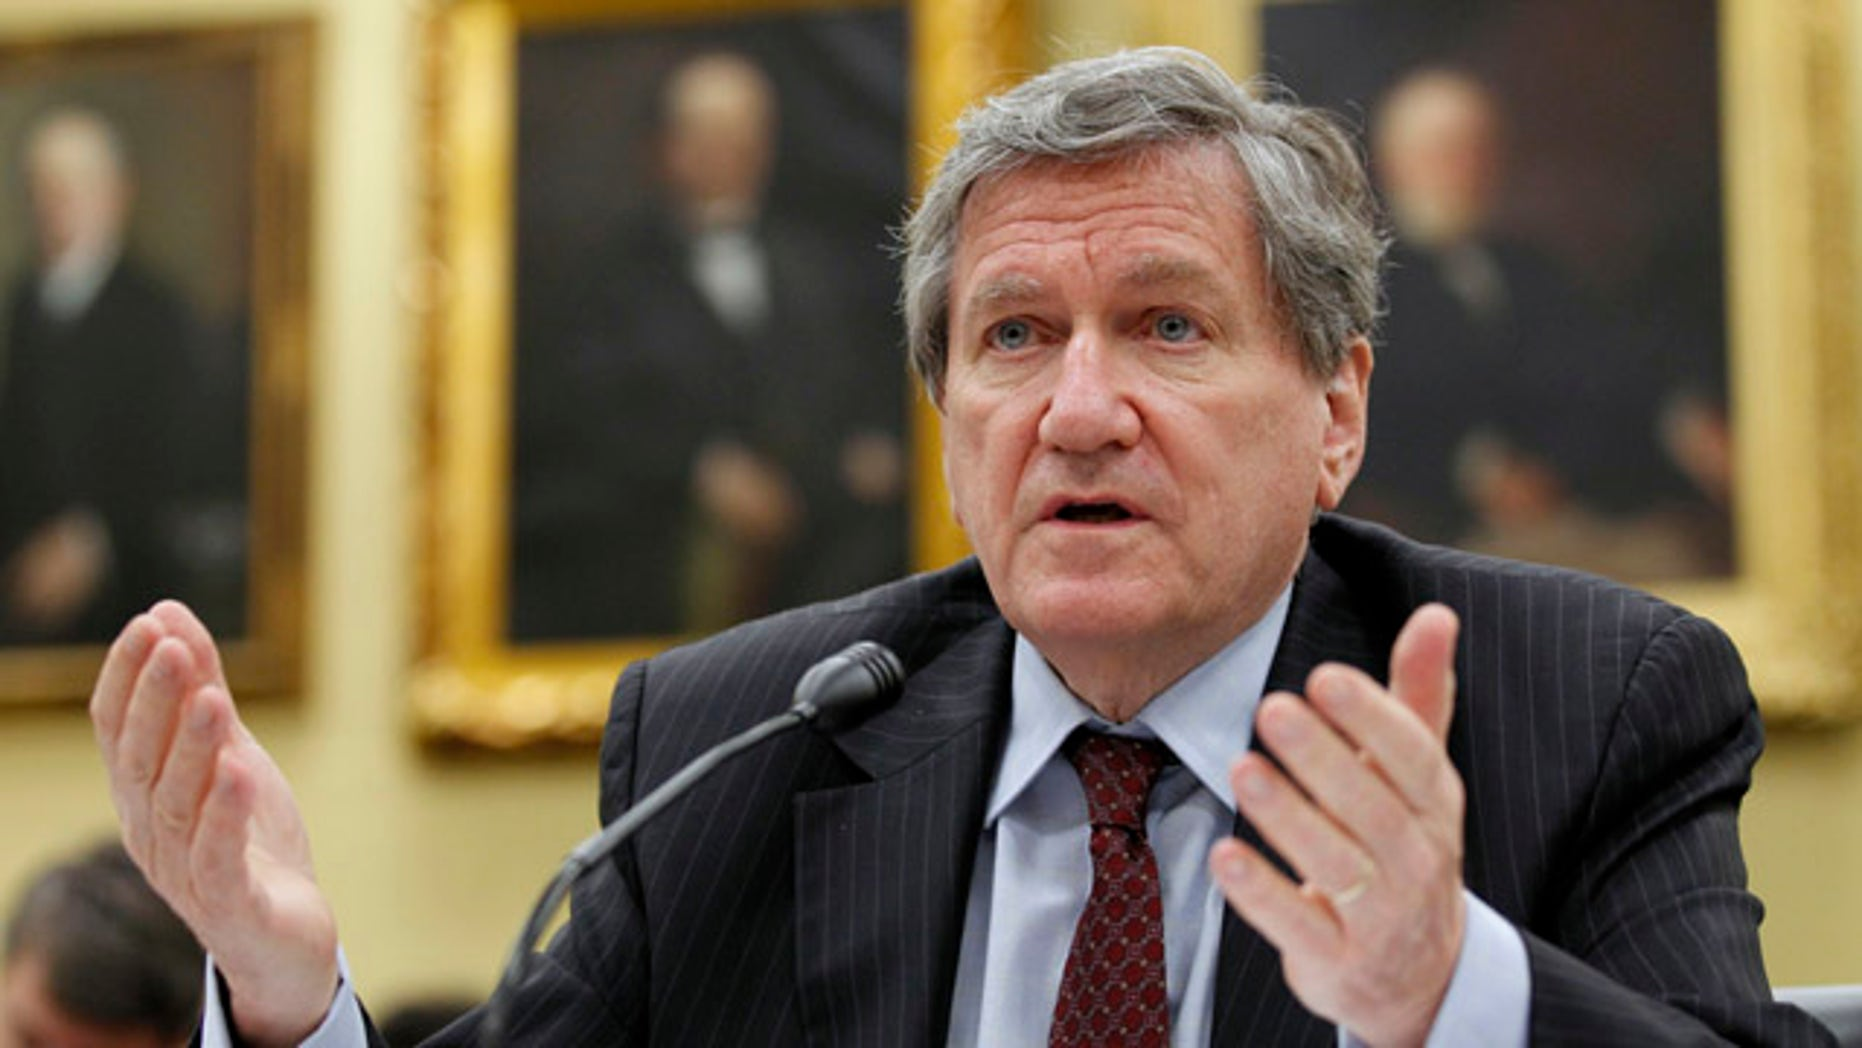 In this July 28, 2010, file photo Richard Holbrooke, Special Representative for Afghanistan and Pakistan, testifies on Capitol Hill in Washington before the House State and Foreign Operations subcommittee hearing on the oversight of U.S. civilian assistance for Afghanistan.